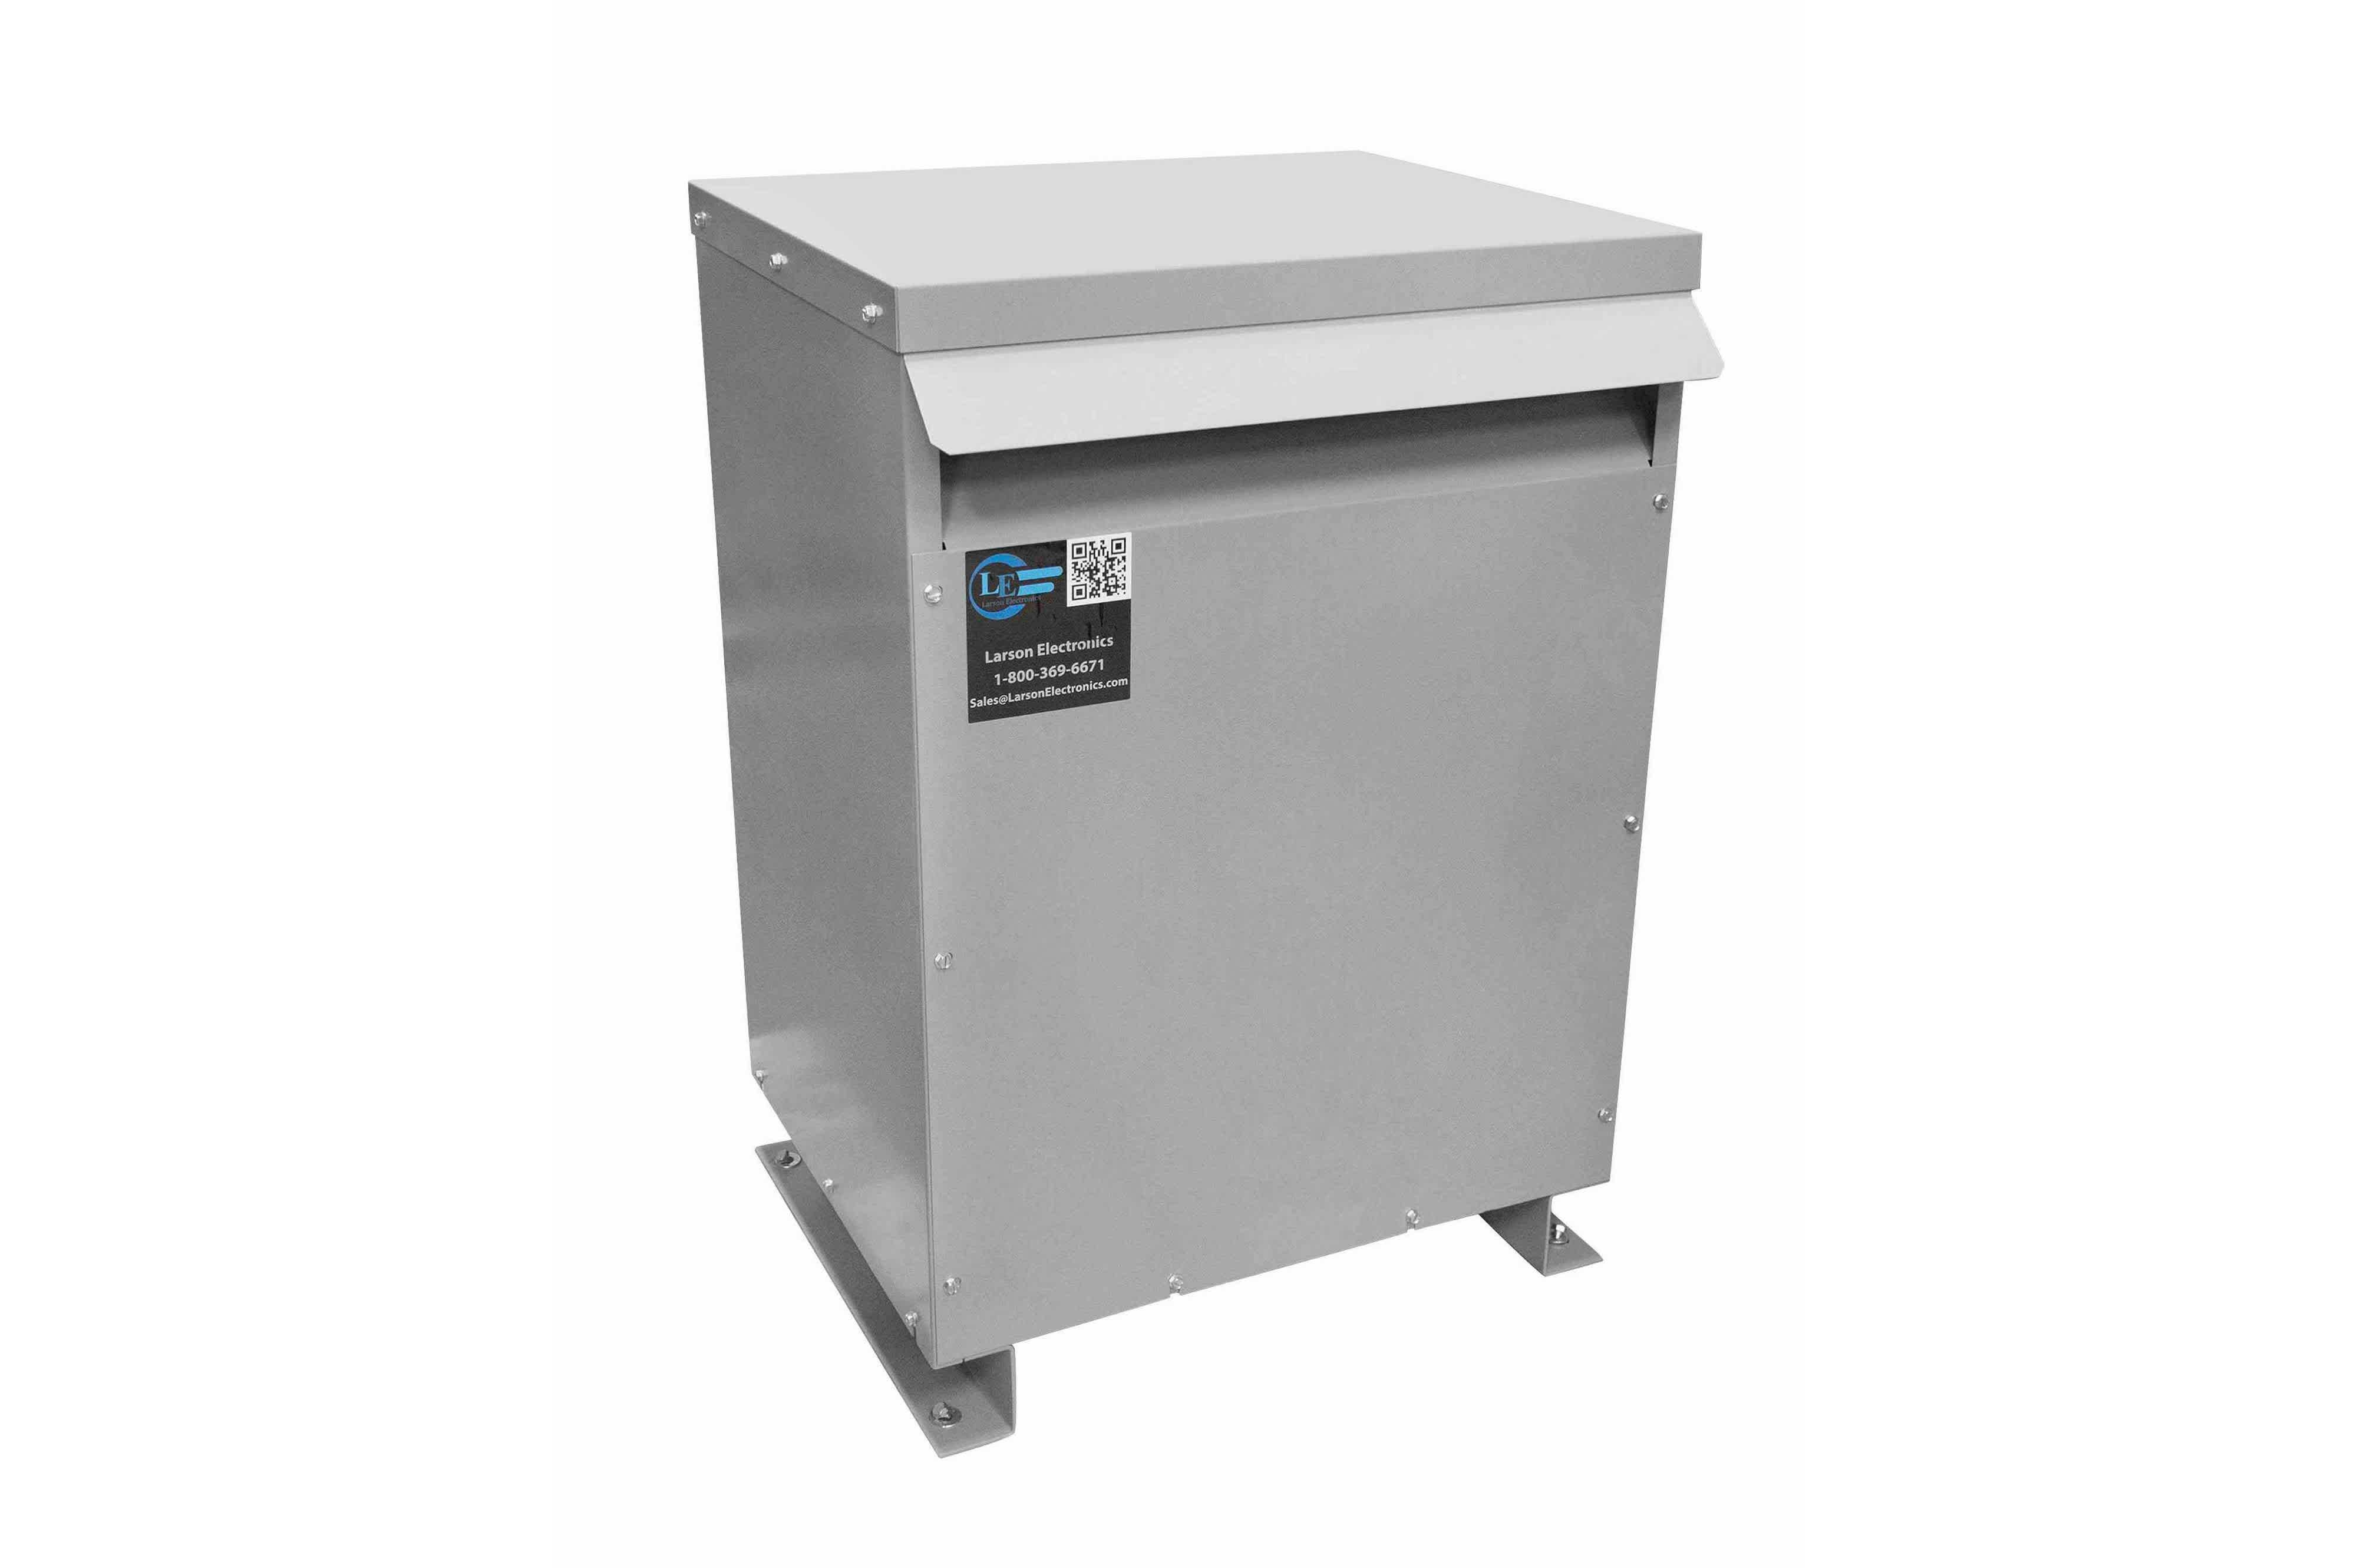 20 kVA 3PH DOE Transformer, 415V Delta Primary, 240V/120 Delta Secondary, N3R, Ventilated, 60 Hz